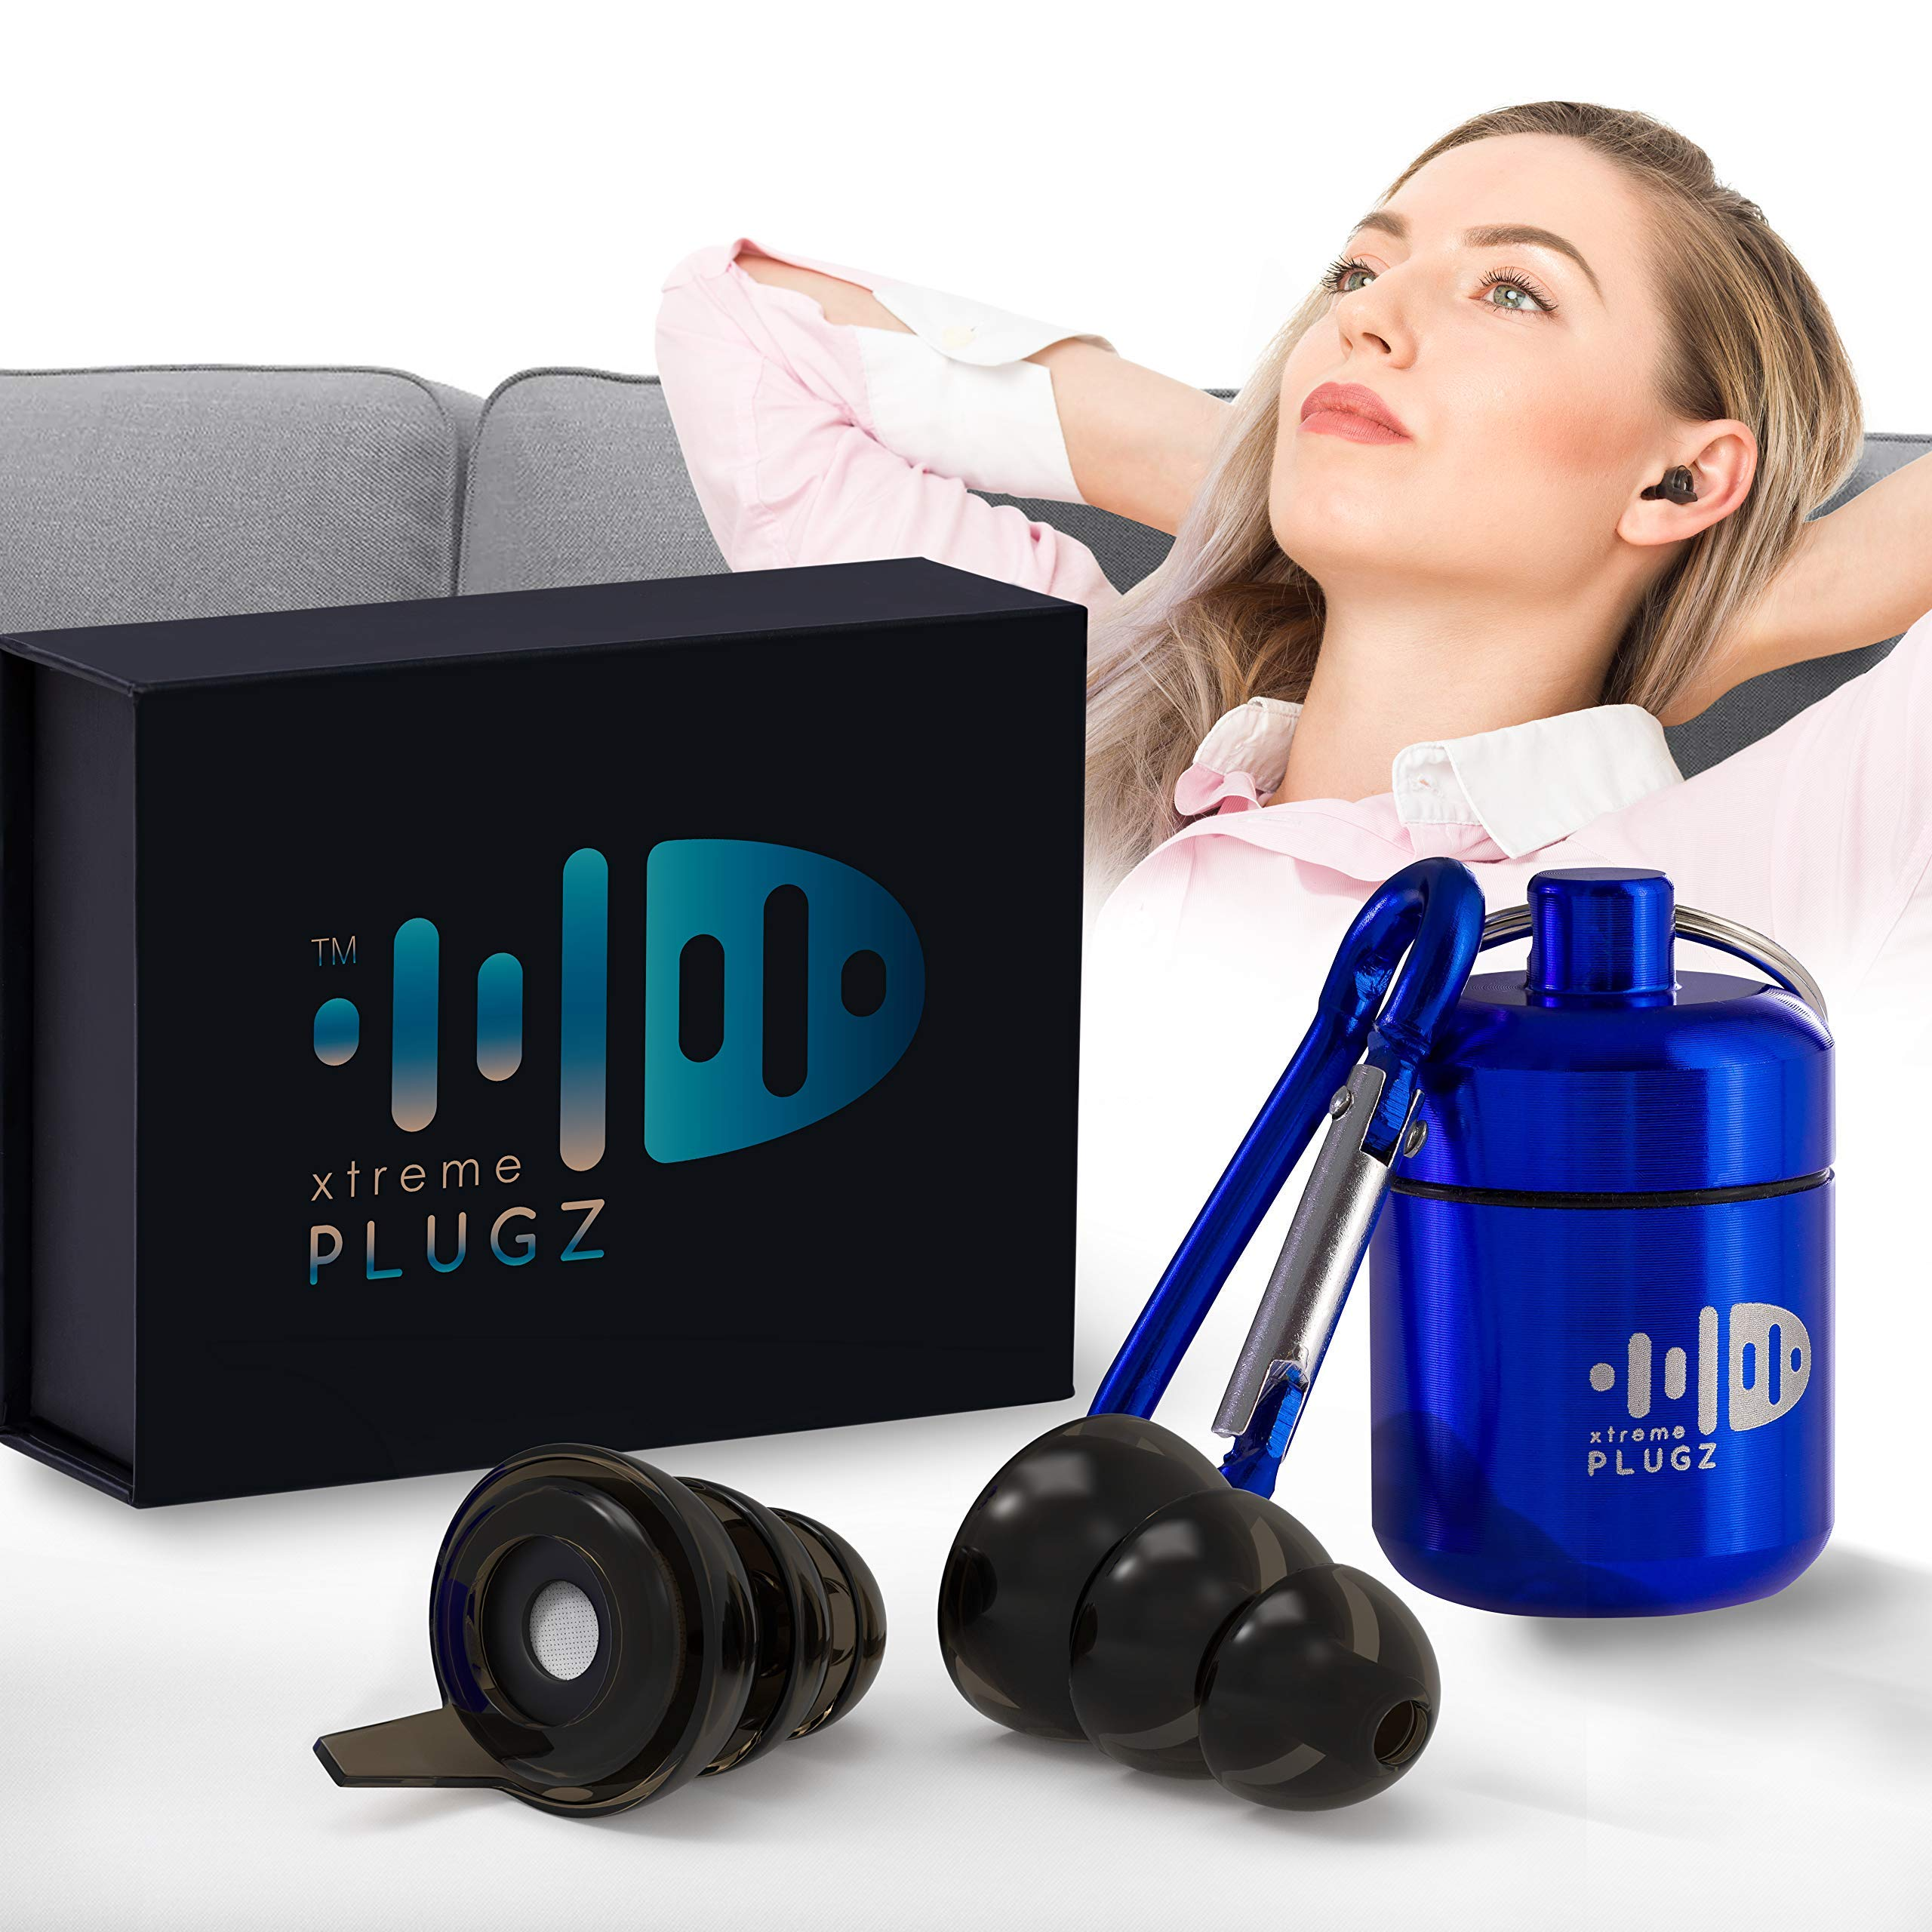 Xtreme Plugz Noise Cancelling Earplugs - High Fidelity Hearing Protection for Concerts Musicians Motorcycle Sensory Disorders and Other Noisy Environments - 3 Different Sizes to Fit All Ear Shapes by Xtreme PLugz